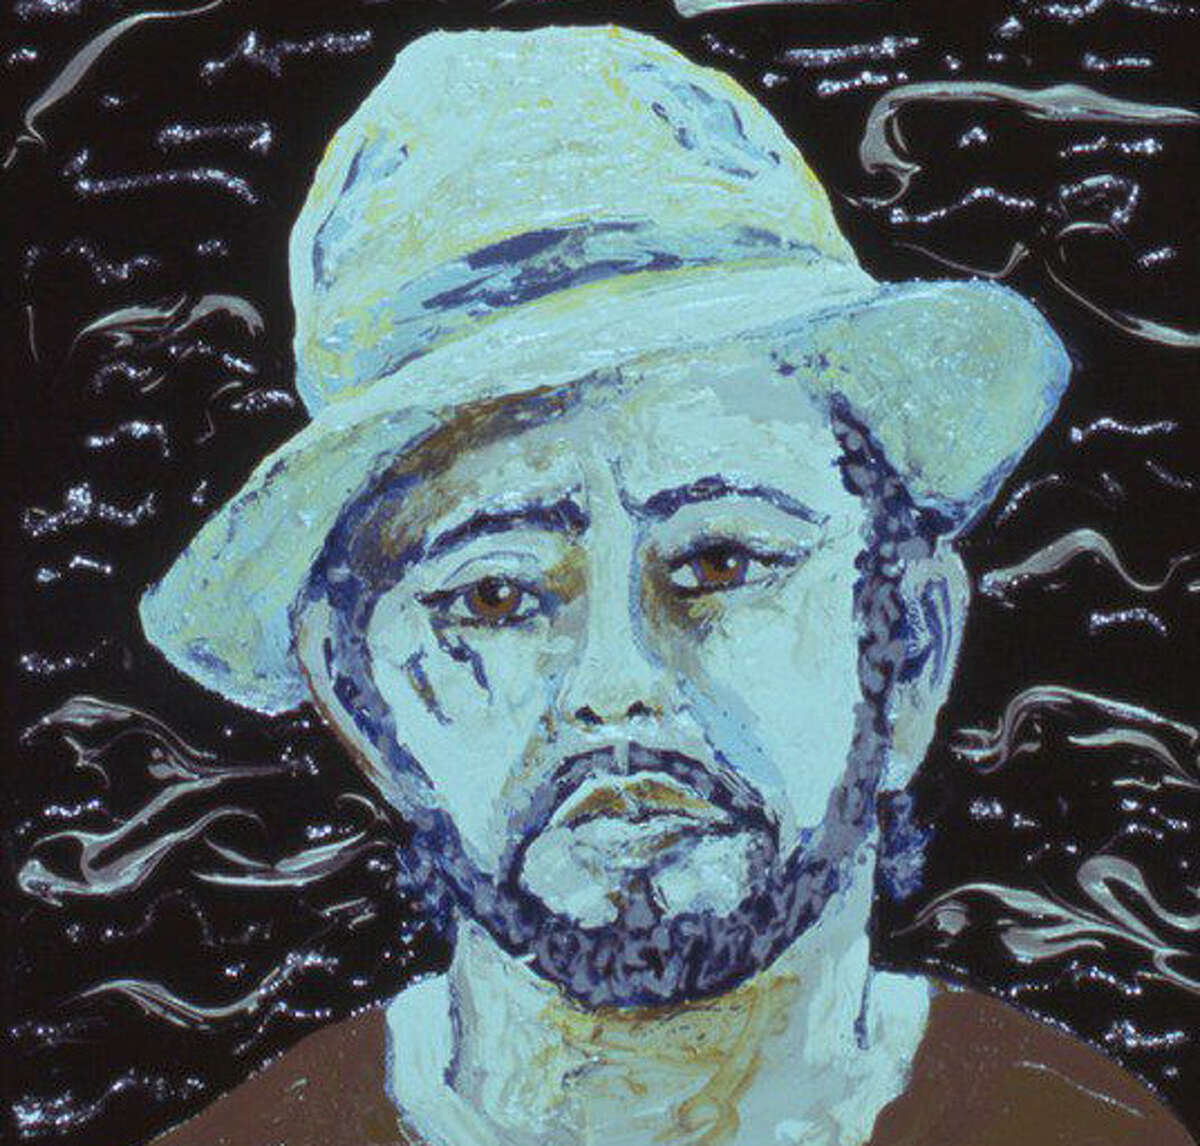 This Mel Casas painting is part of his